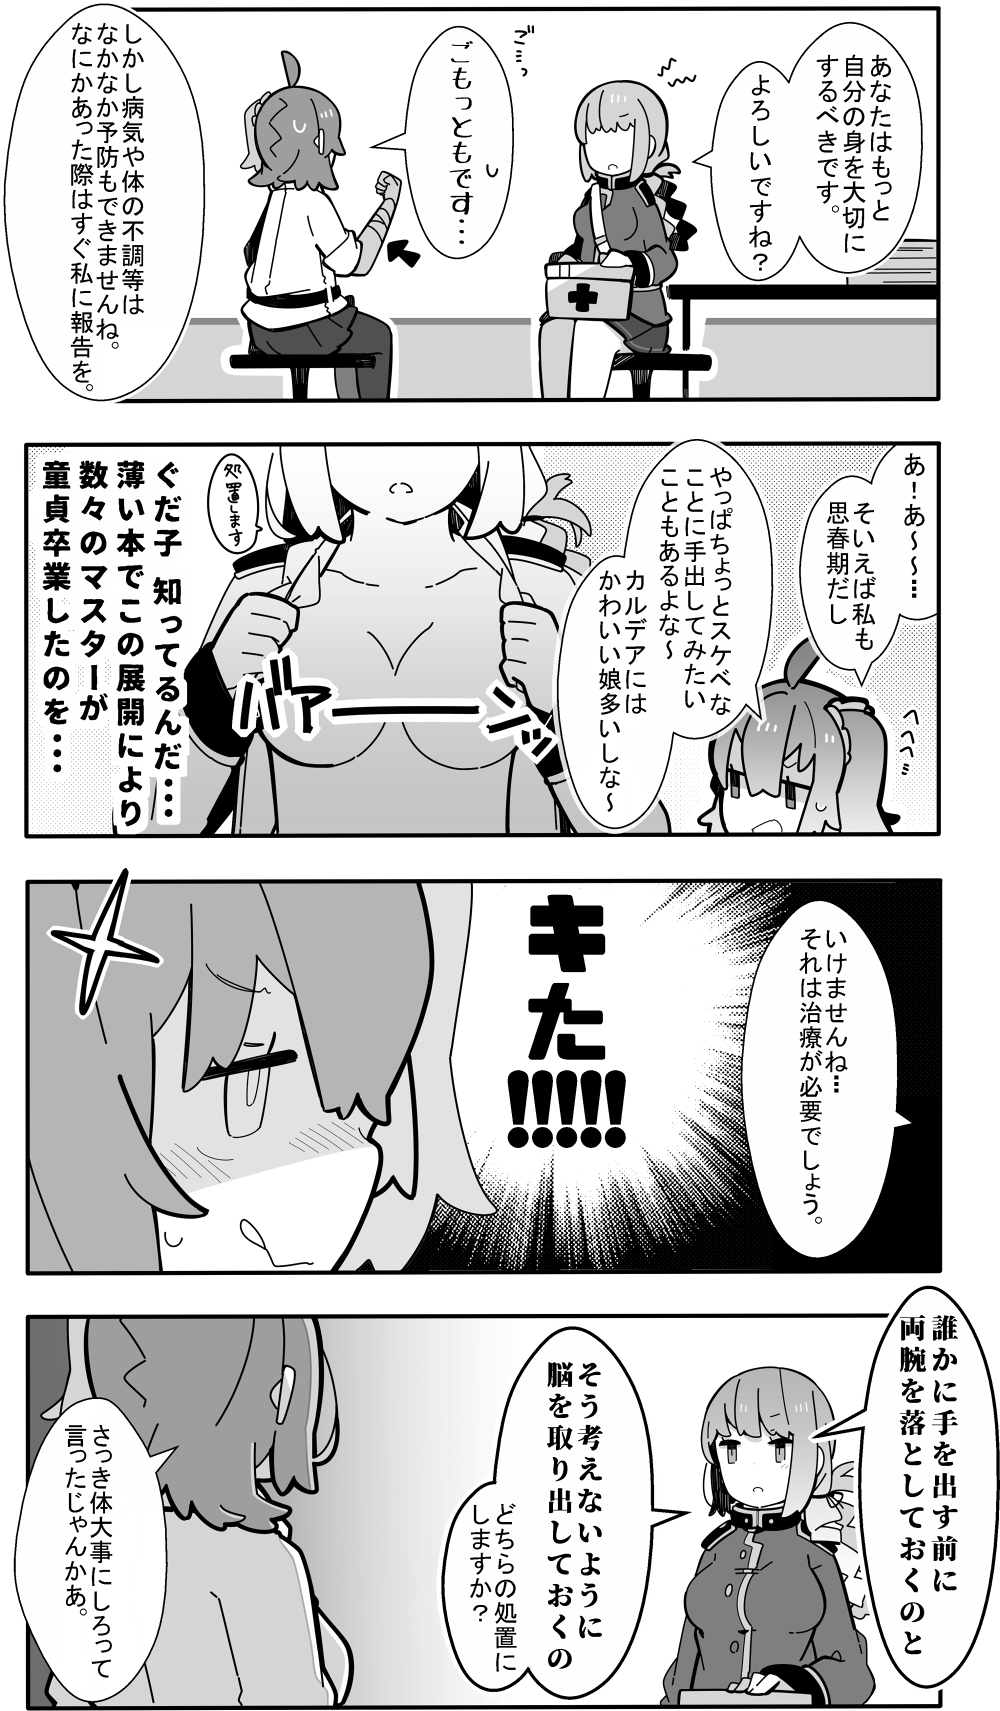 2girls ahoge bandage bandaged_arm bandages braid breasts chaldea_uniform clenched_hand comic commentary_request epaulettes fate/grand_order fate_(series) first_aid_kit florence_nightingale_(fate/grand_order) folded_ponytail fujimaru_ritsuka_(female) greyscale hair_between_eyes highres imagining jacket long_sleeves military military_uniform monochrome multiple_girls no_bra no_shirt open_clothes open_jacket open_mouth pantyhose pekeko_(pepekekeko) pleated_skirt pointer shaded_face side_ponytail sitting skirt stool sweatdrop translation_request uniform